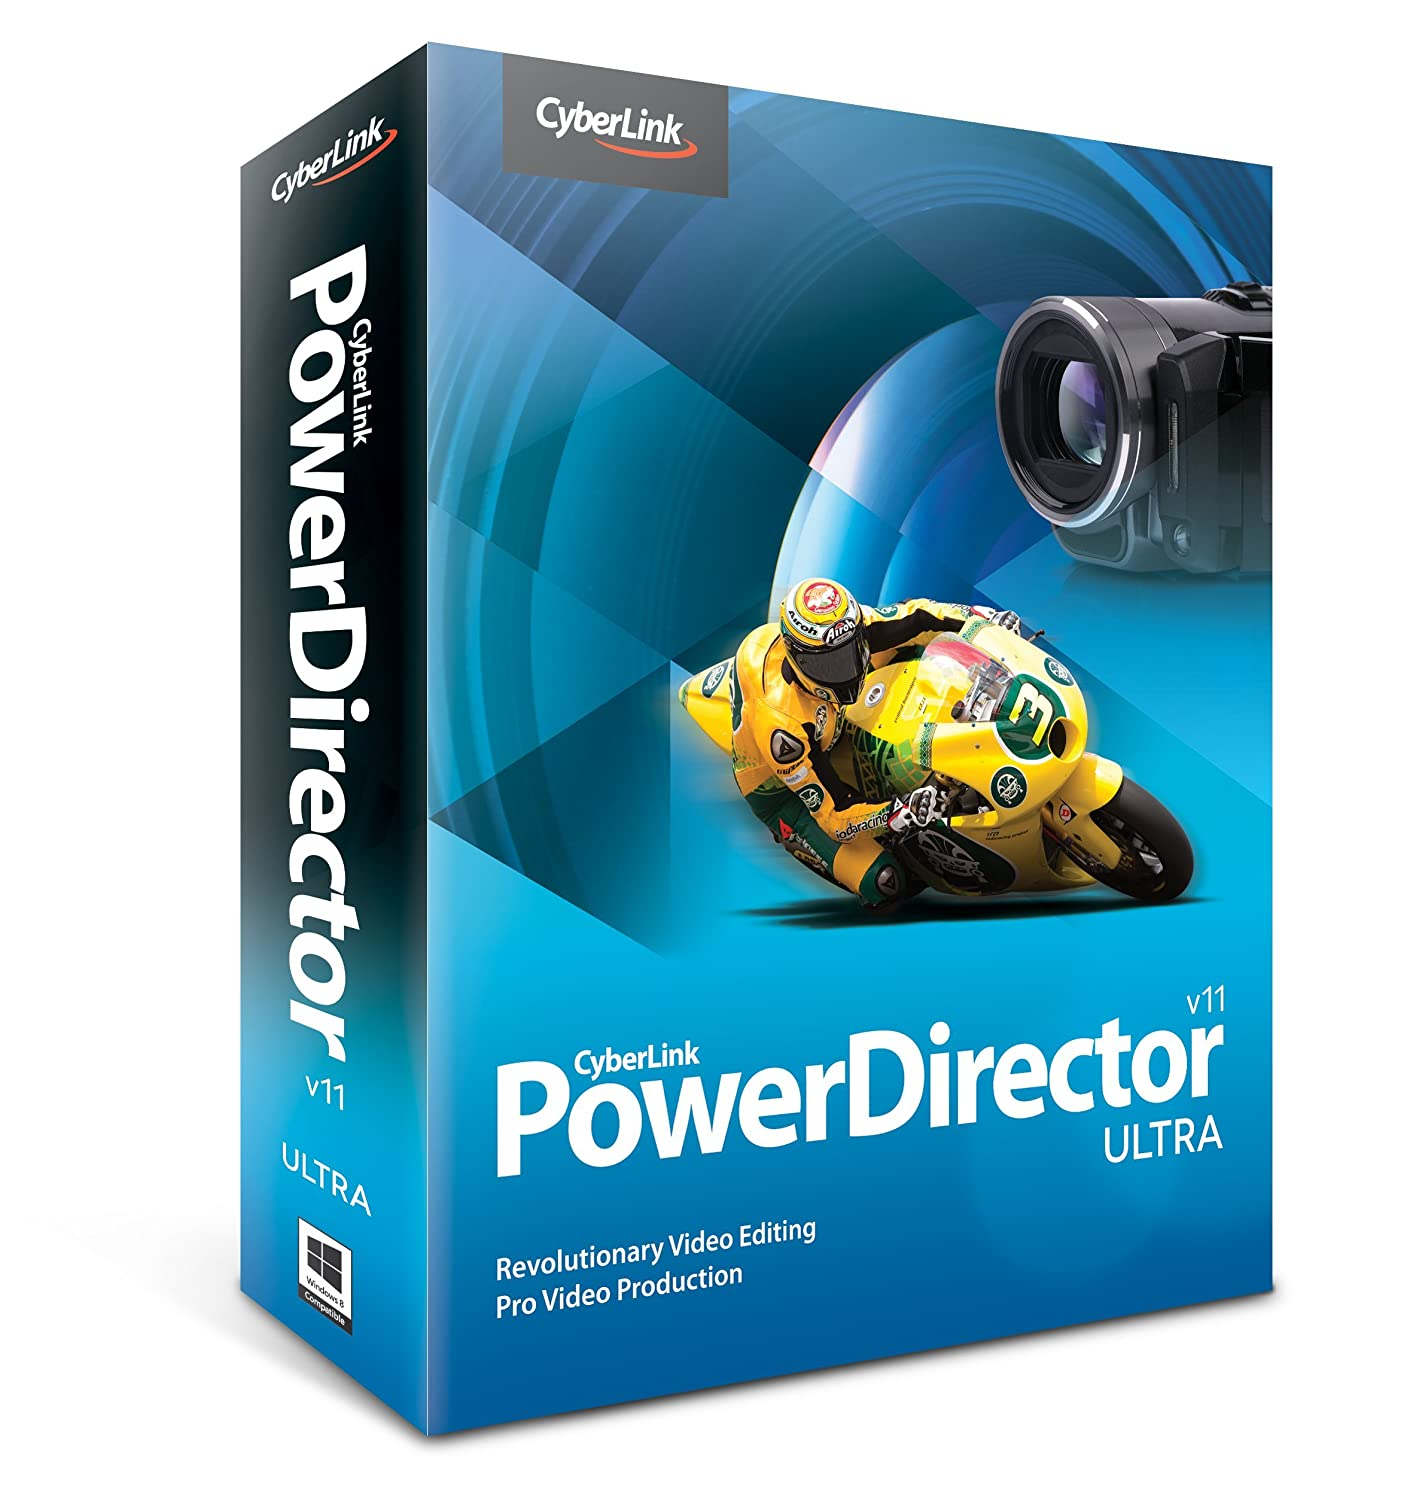 CyberLink PowerDirector 16.0.2313.0